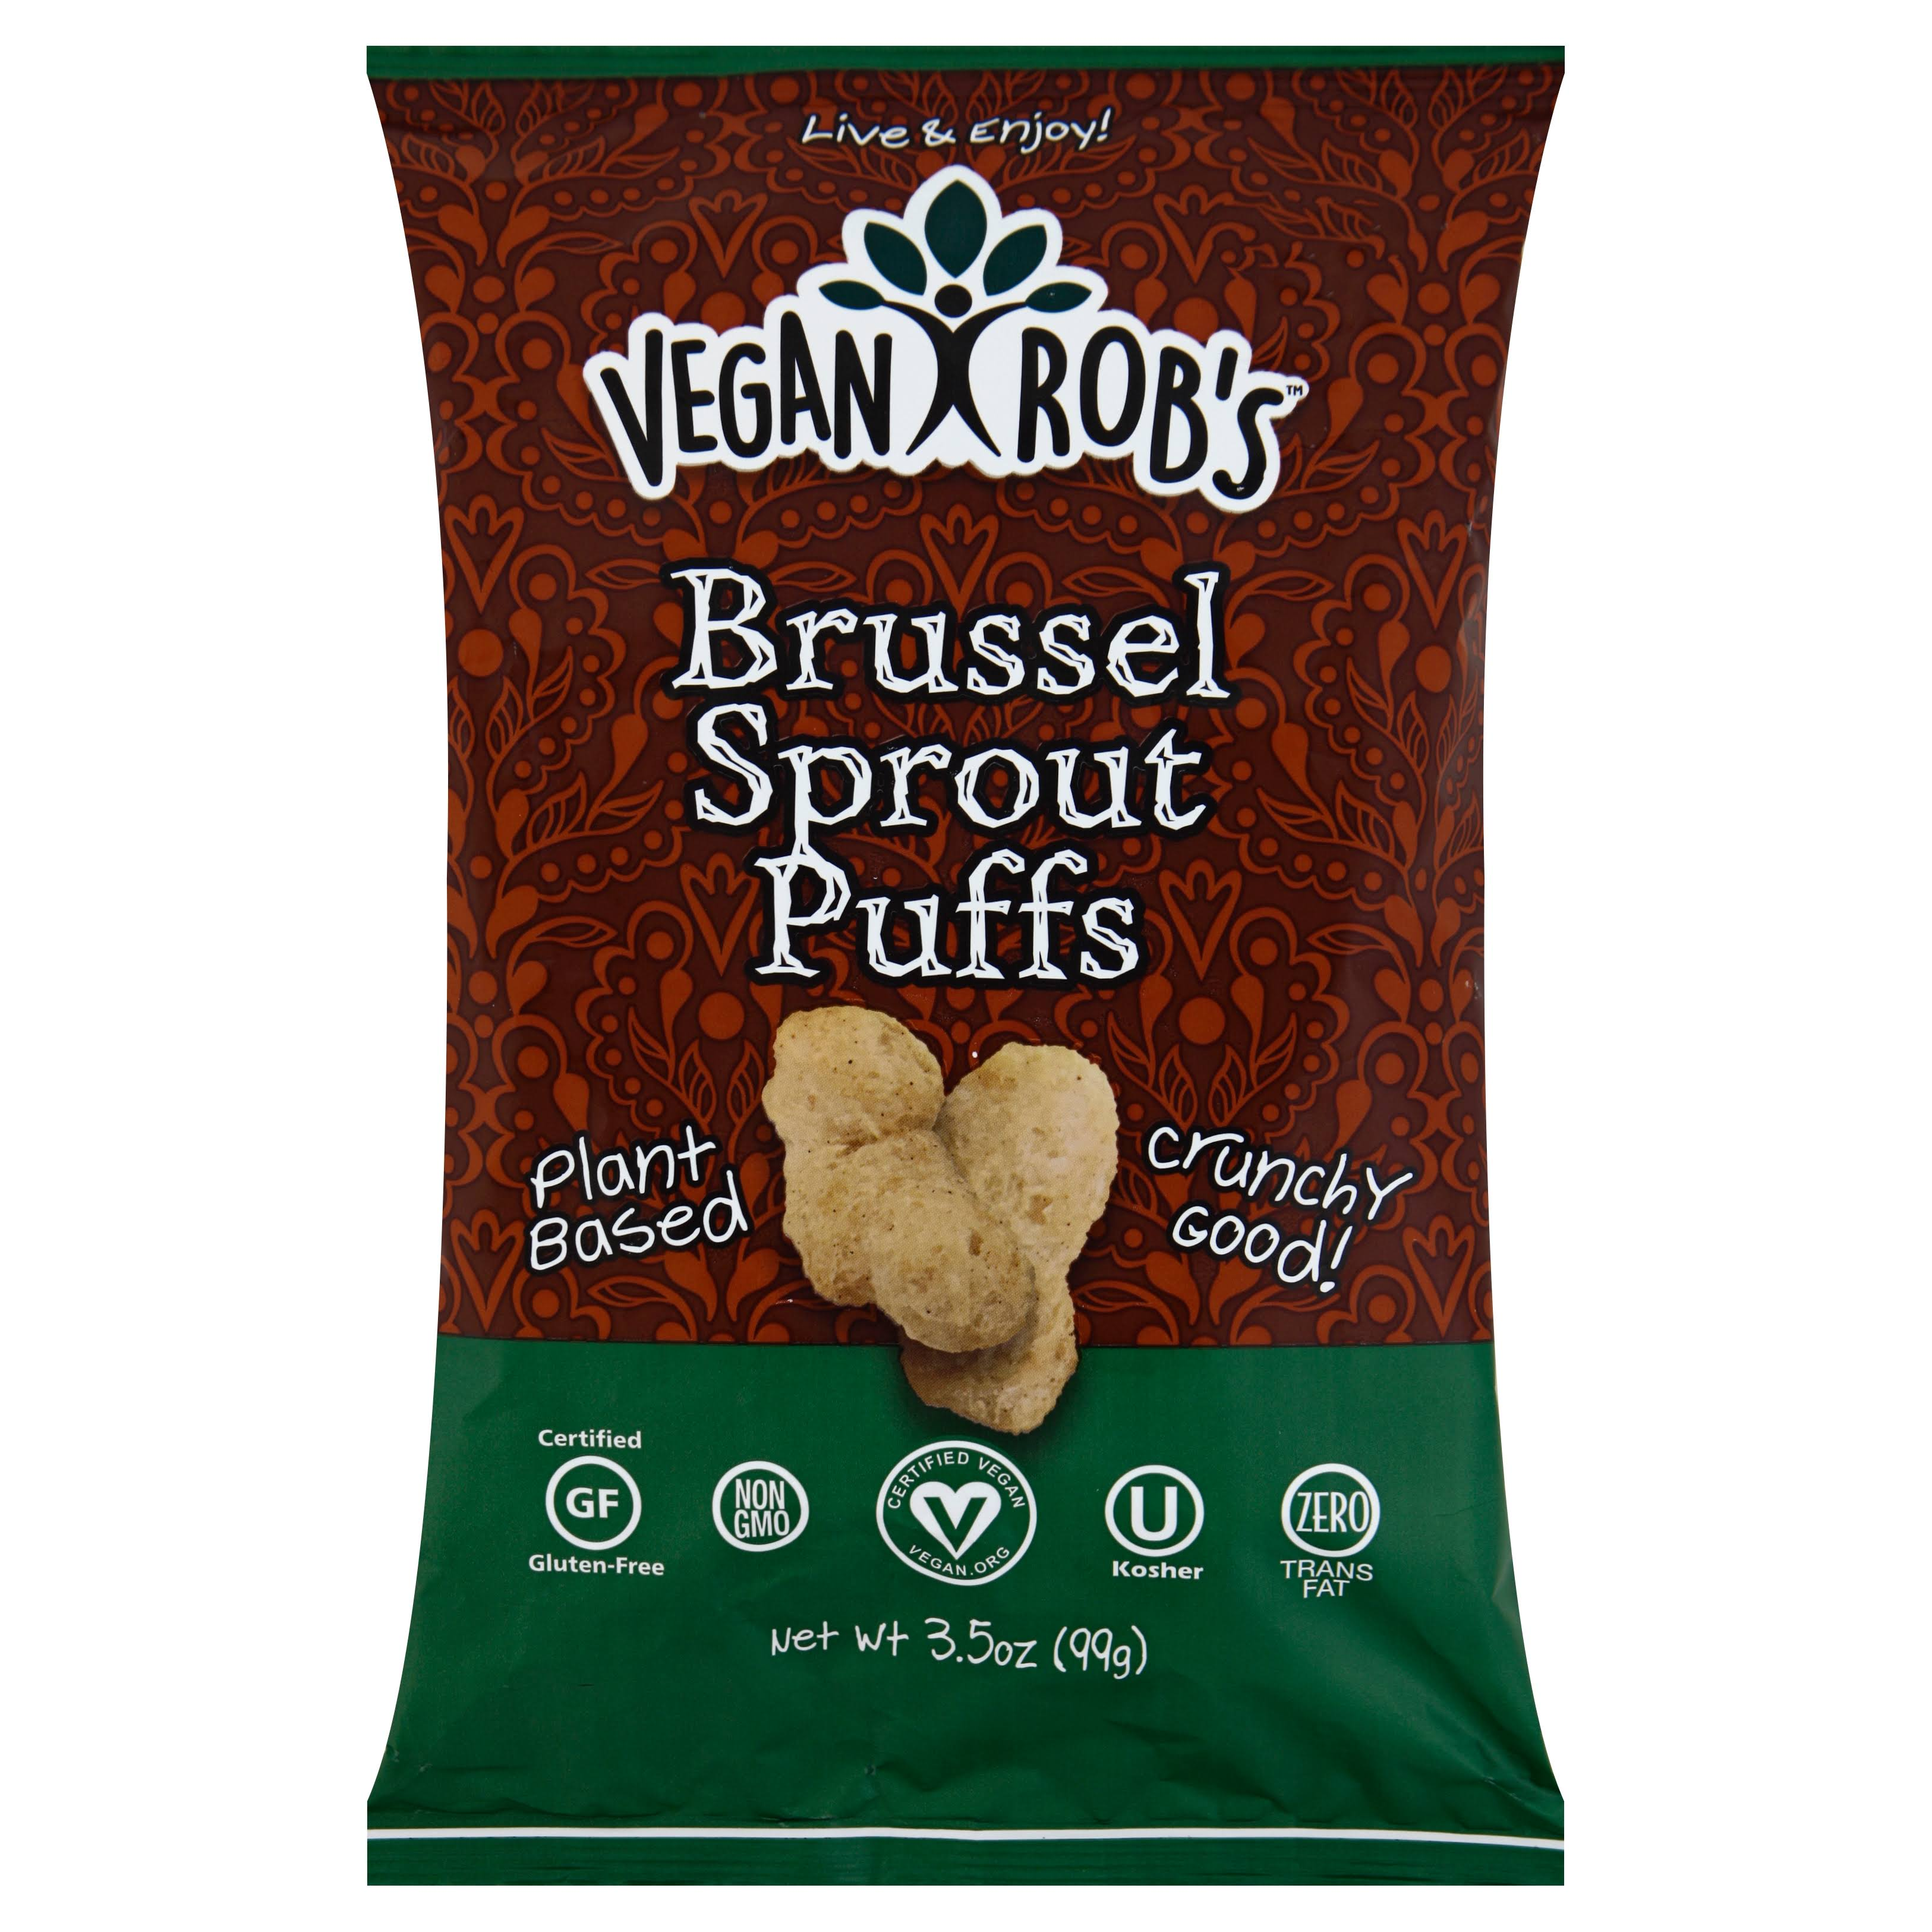 Vegan Robs Brussel Sprout Puffs - 3.5 oz